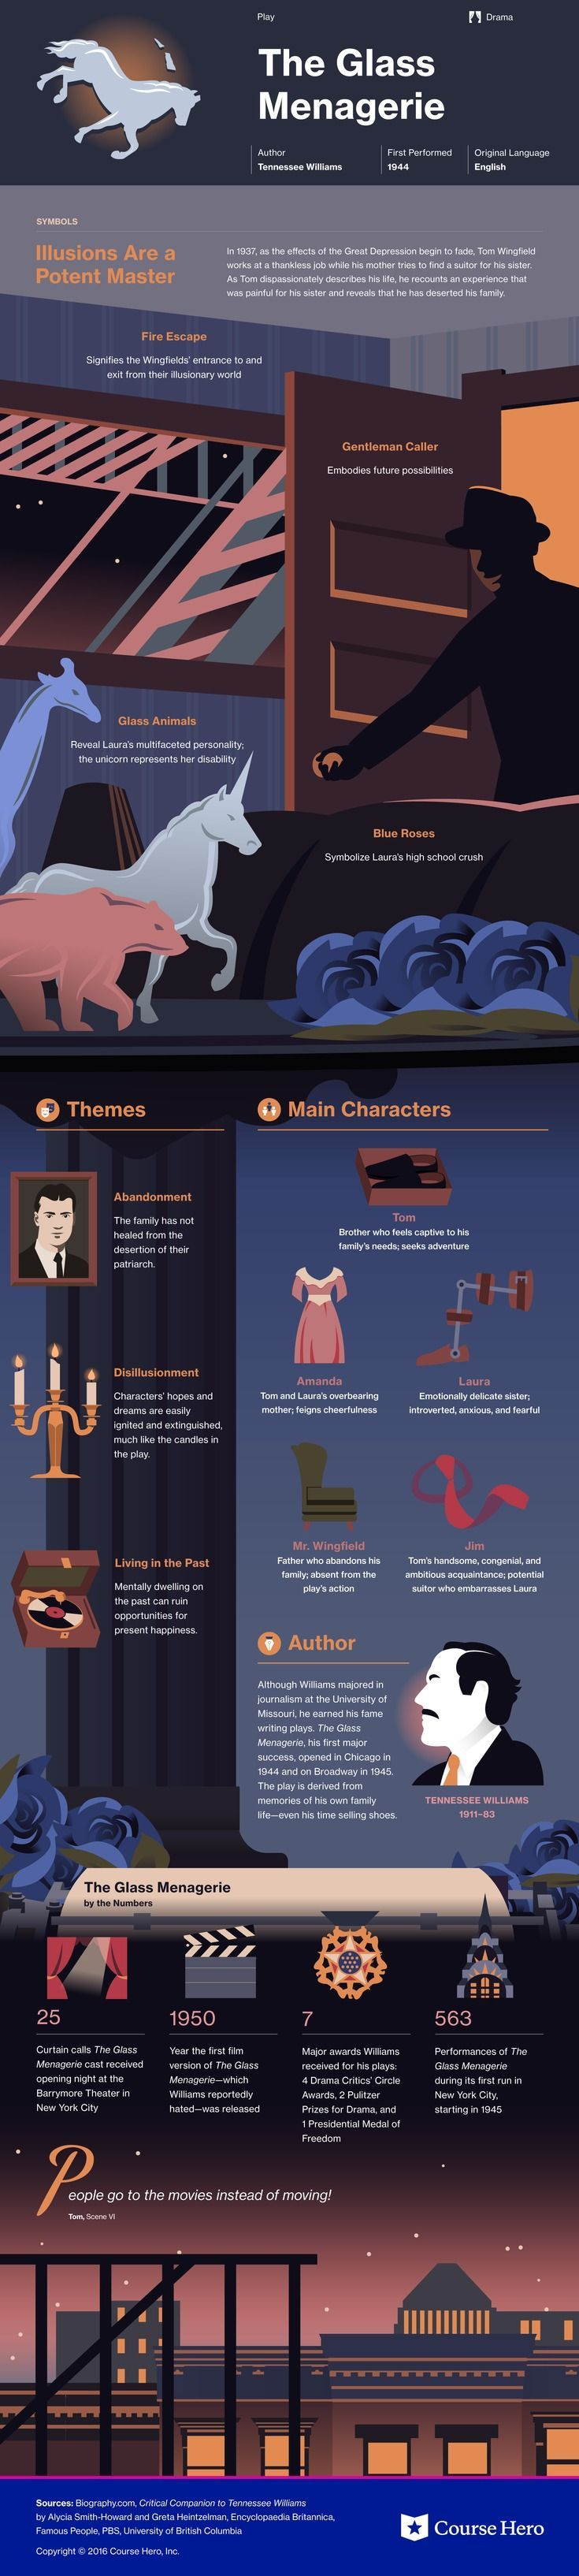 best ideas about the glass menagerie the glass the glass menagerie infographic course hero